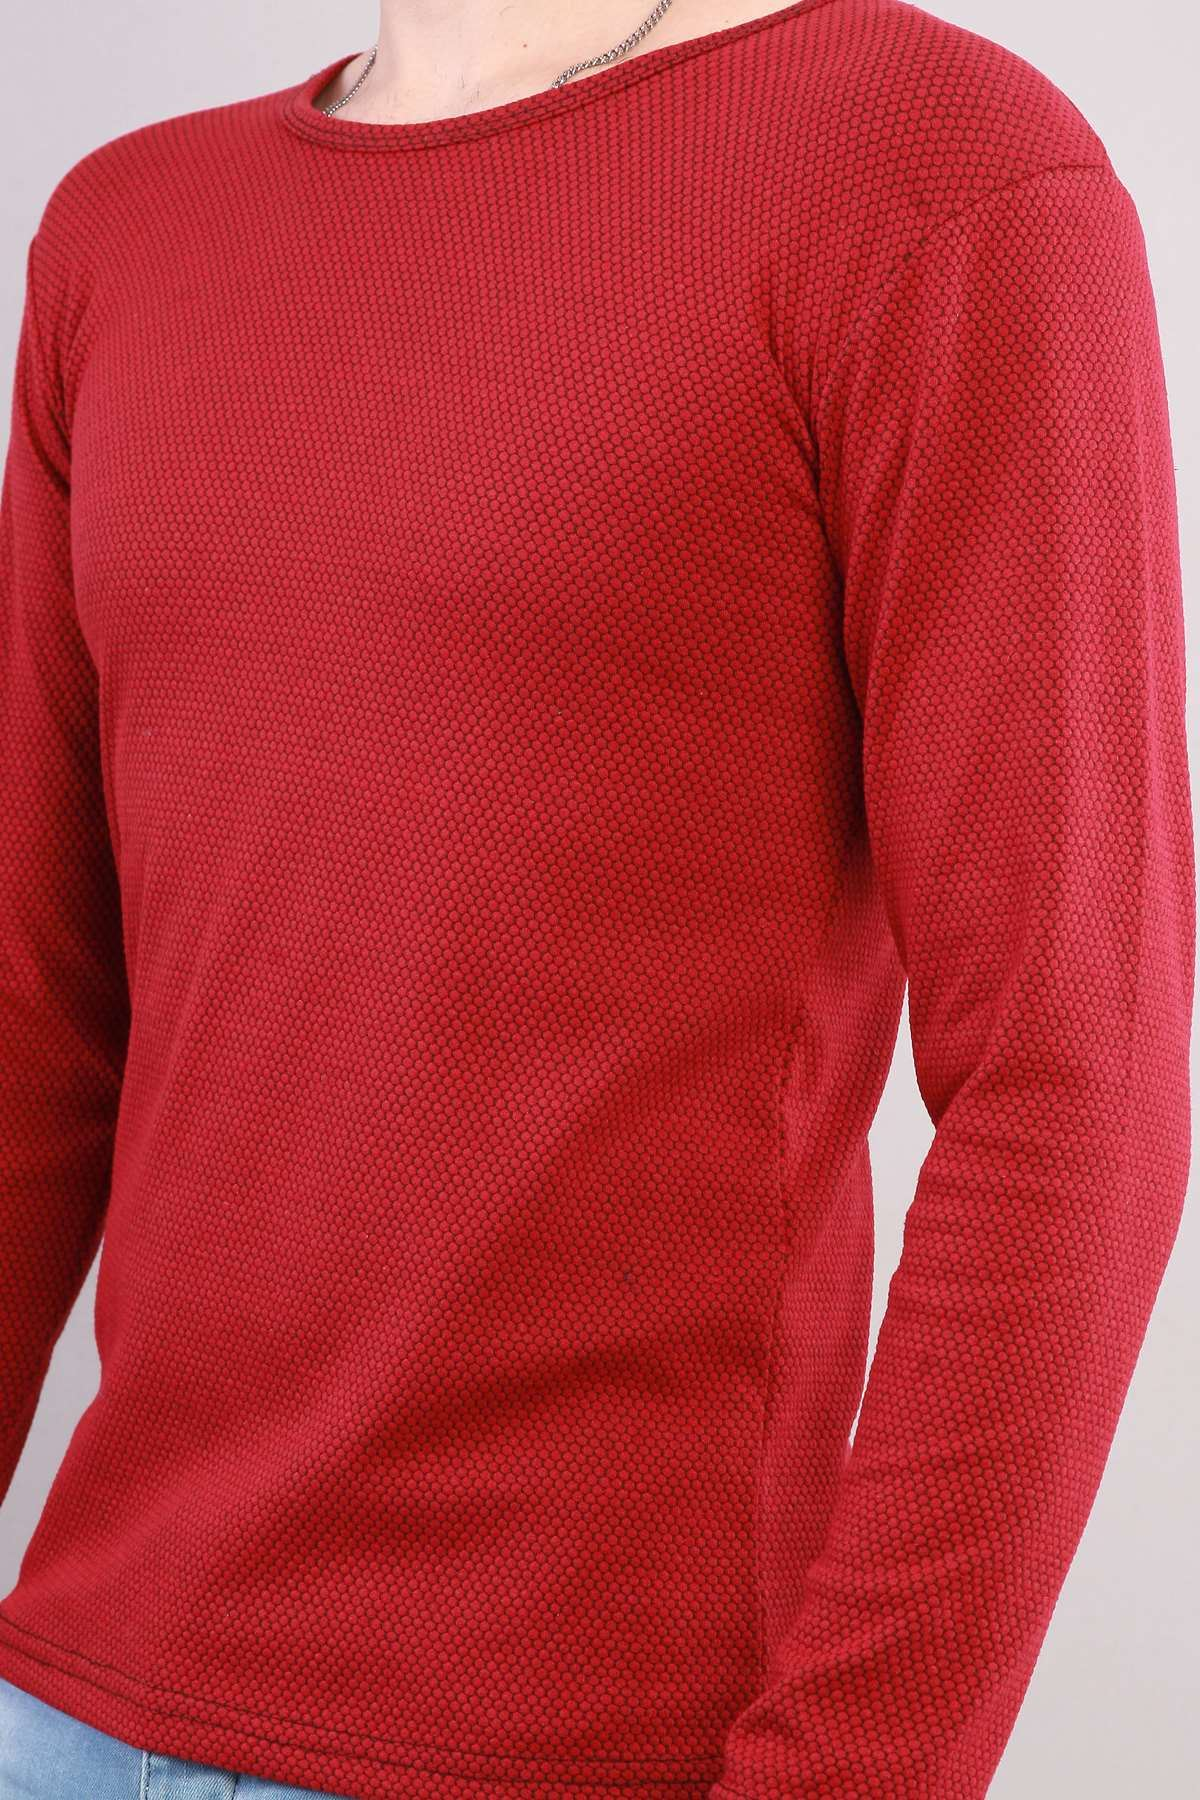 Petek Desen 0 Yaka Sweatshirt Bordo